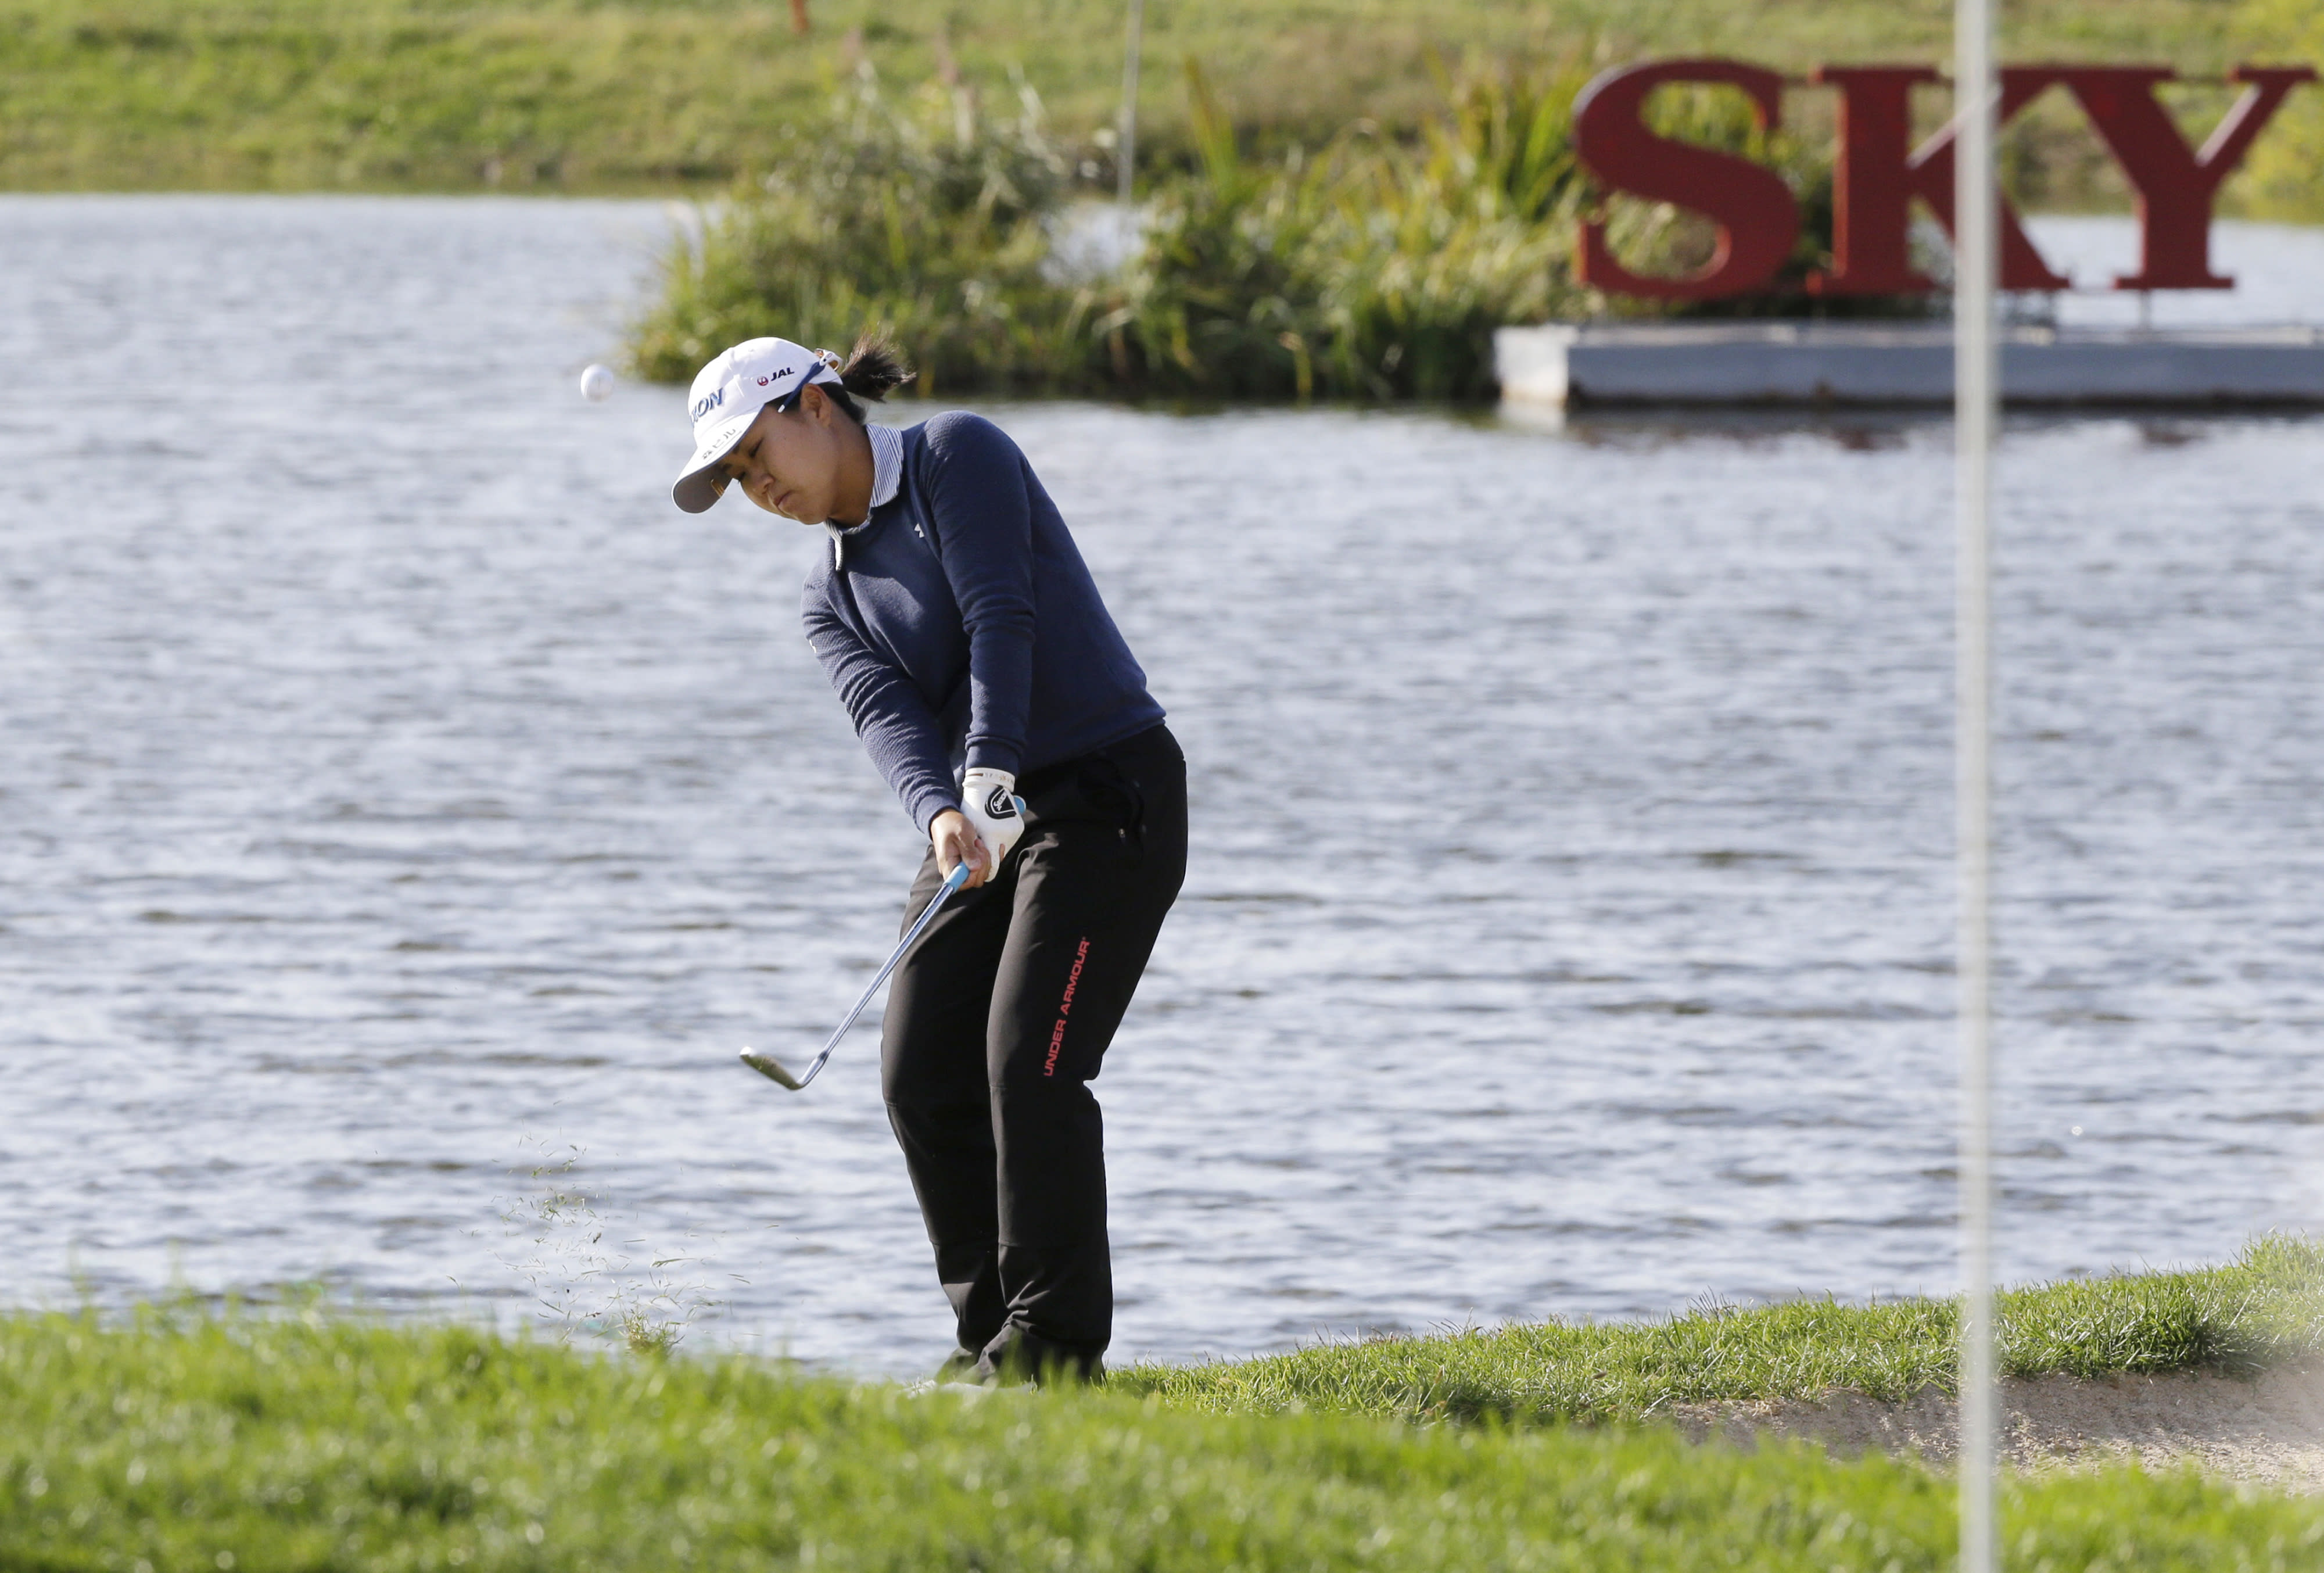 Nasa Hataoka of Japan watches her shot on the 18th hole during the first round of the LPGA KEB Hana Bank Championship at Sky72 Golf Club in Incheon, South Korea, Thursday, Oct. 11, 2018. (AP Photo/Ahn Young-joon)